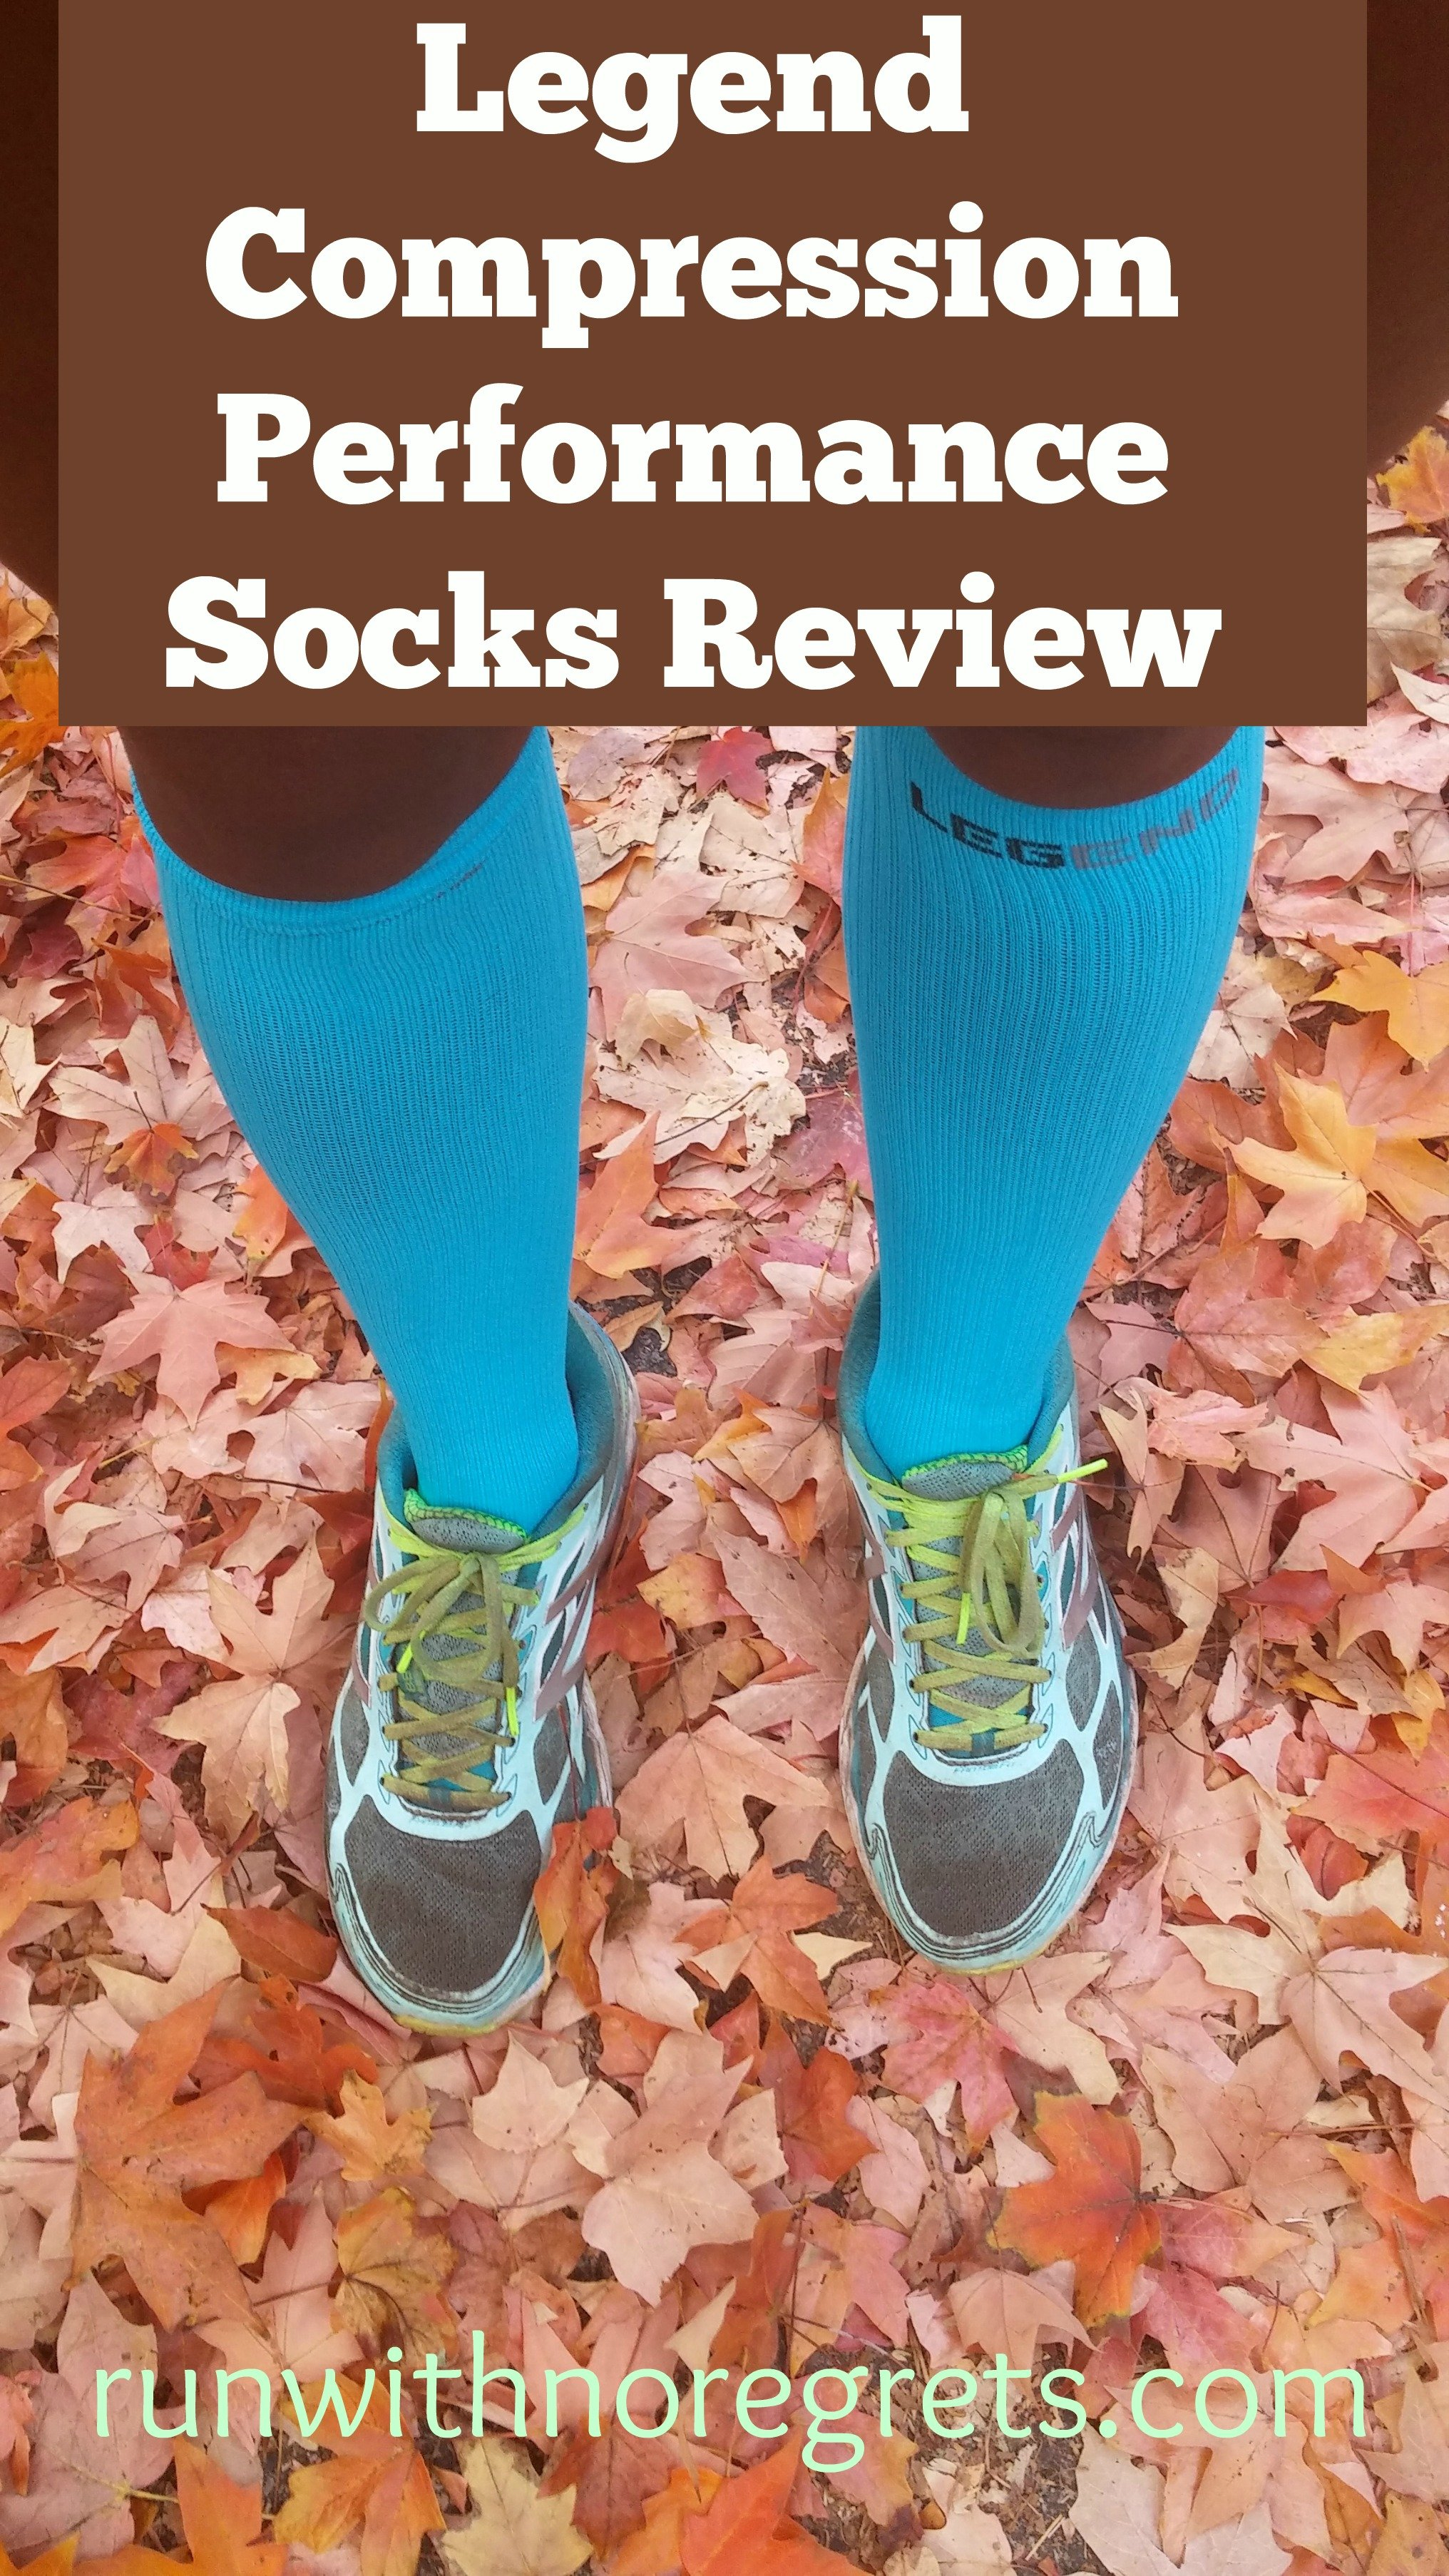 Have you tried Legend Compression socks? I've loved using them either on a run or for recovery! Check out my review and get a discount for 15% off with Bibsave15. More running product reviews at runwithnoregrets.com!